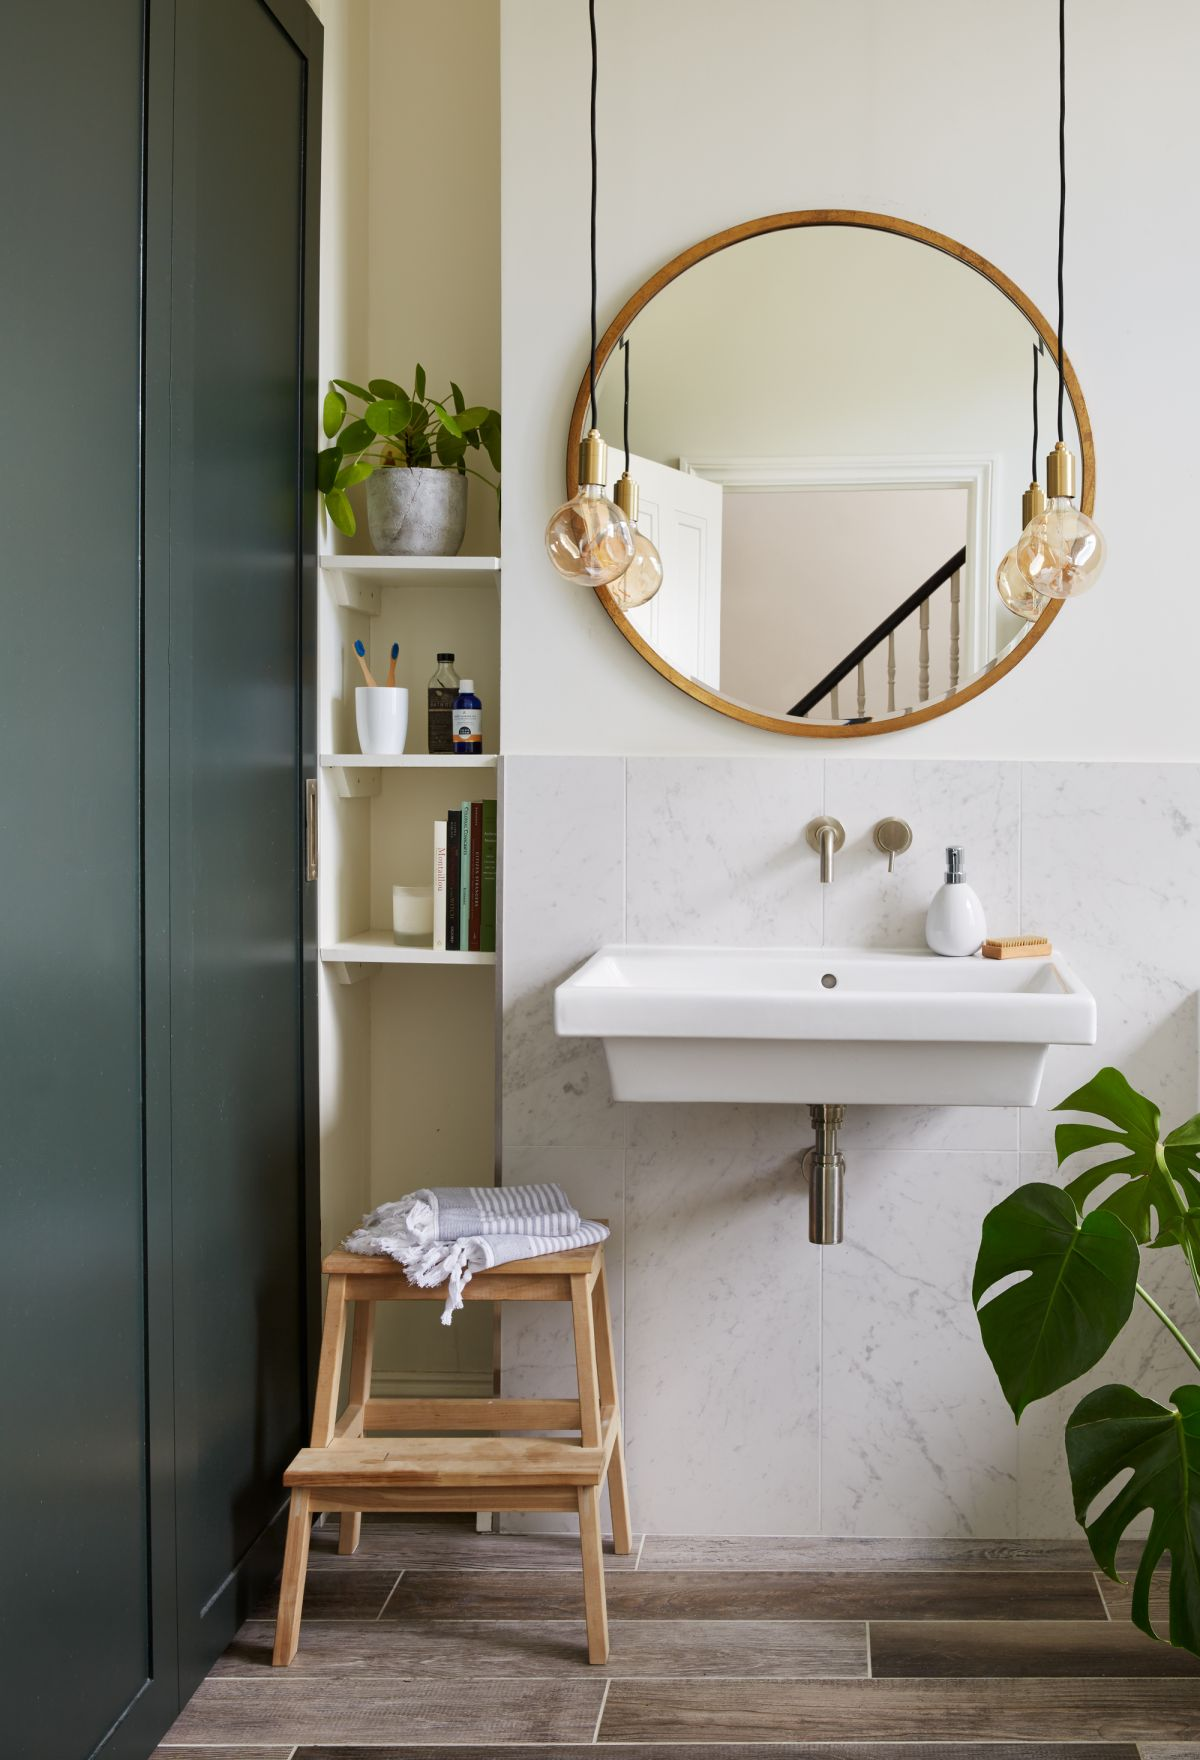 Small bathroom ideas: 18 clever ways to make the most of ... on Bathroom Designs For Small Spaces  id=69944